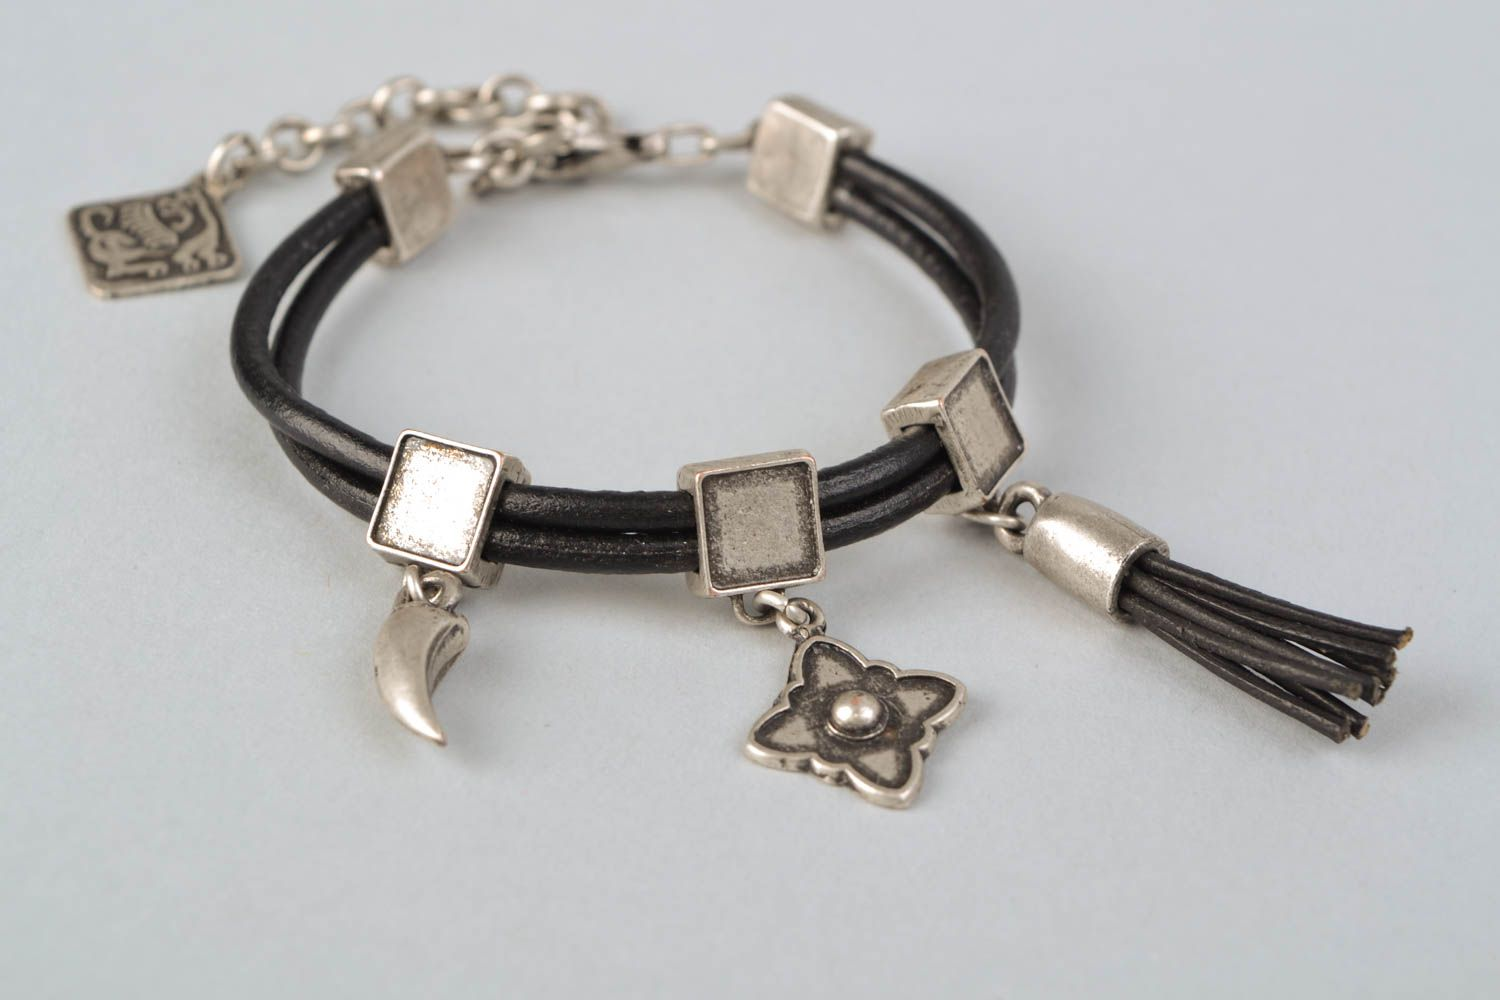 Metal bracelet with cord and charms photo 4